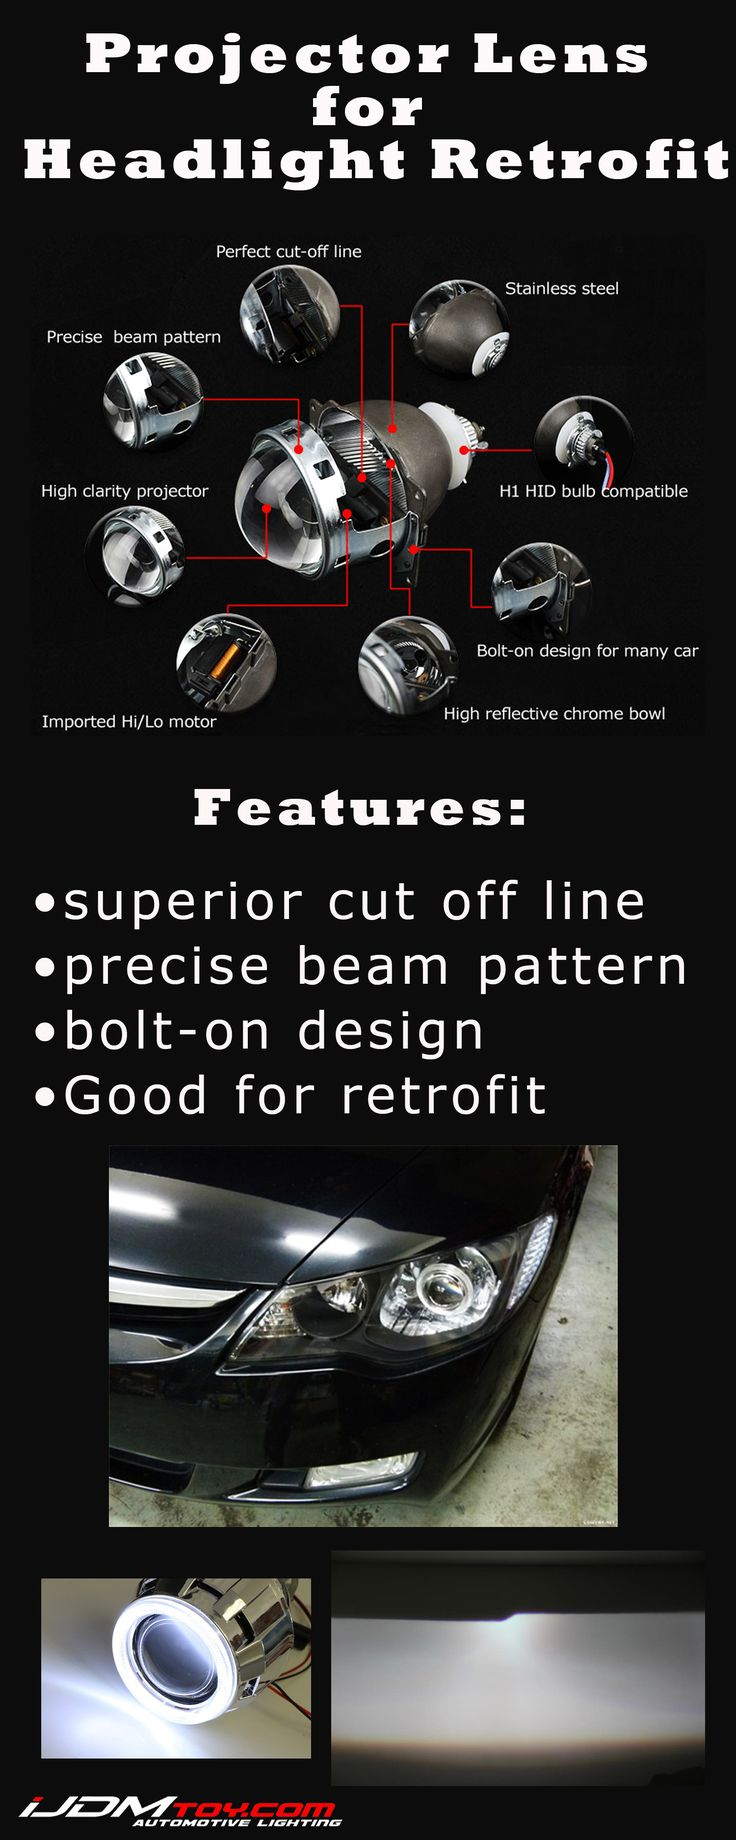 With projector lens, you can retrofit your headlights for a new look.  http://store.ijdmtoy.com/H1-Bi-Xenon-HID-Retrofit-Projector-For-Headlights-p/35-08x-projector.htm  #iJDMTOY #JDM #projector #projectorlens #headlights #aftermarket #retrofit #LED #HID #DIY #carparts #installation